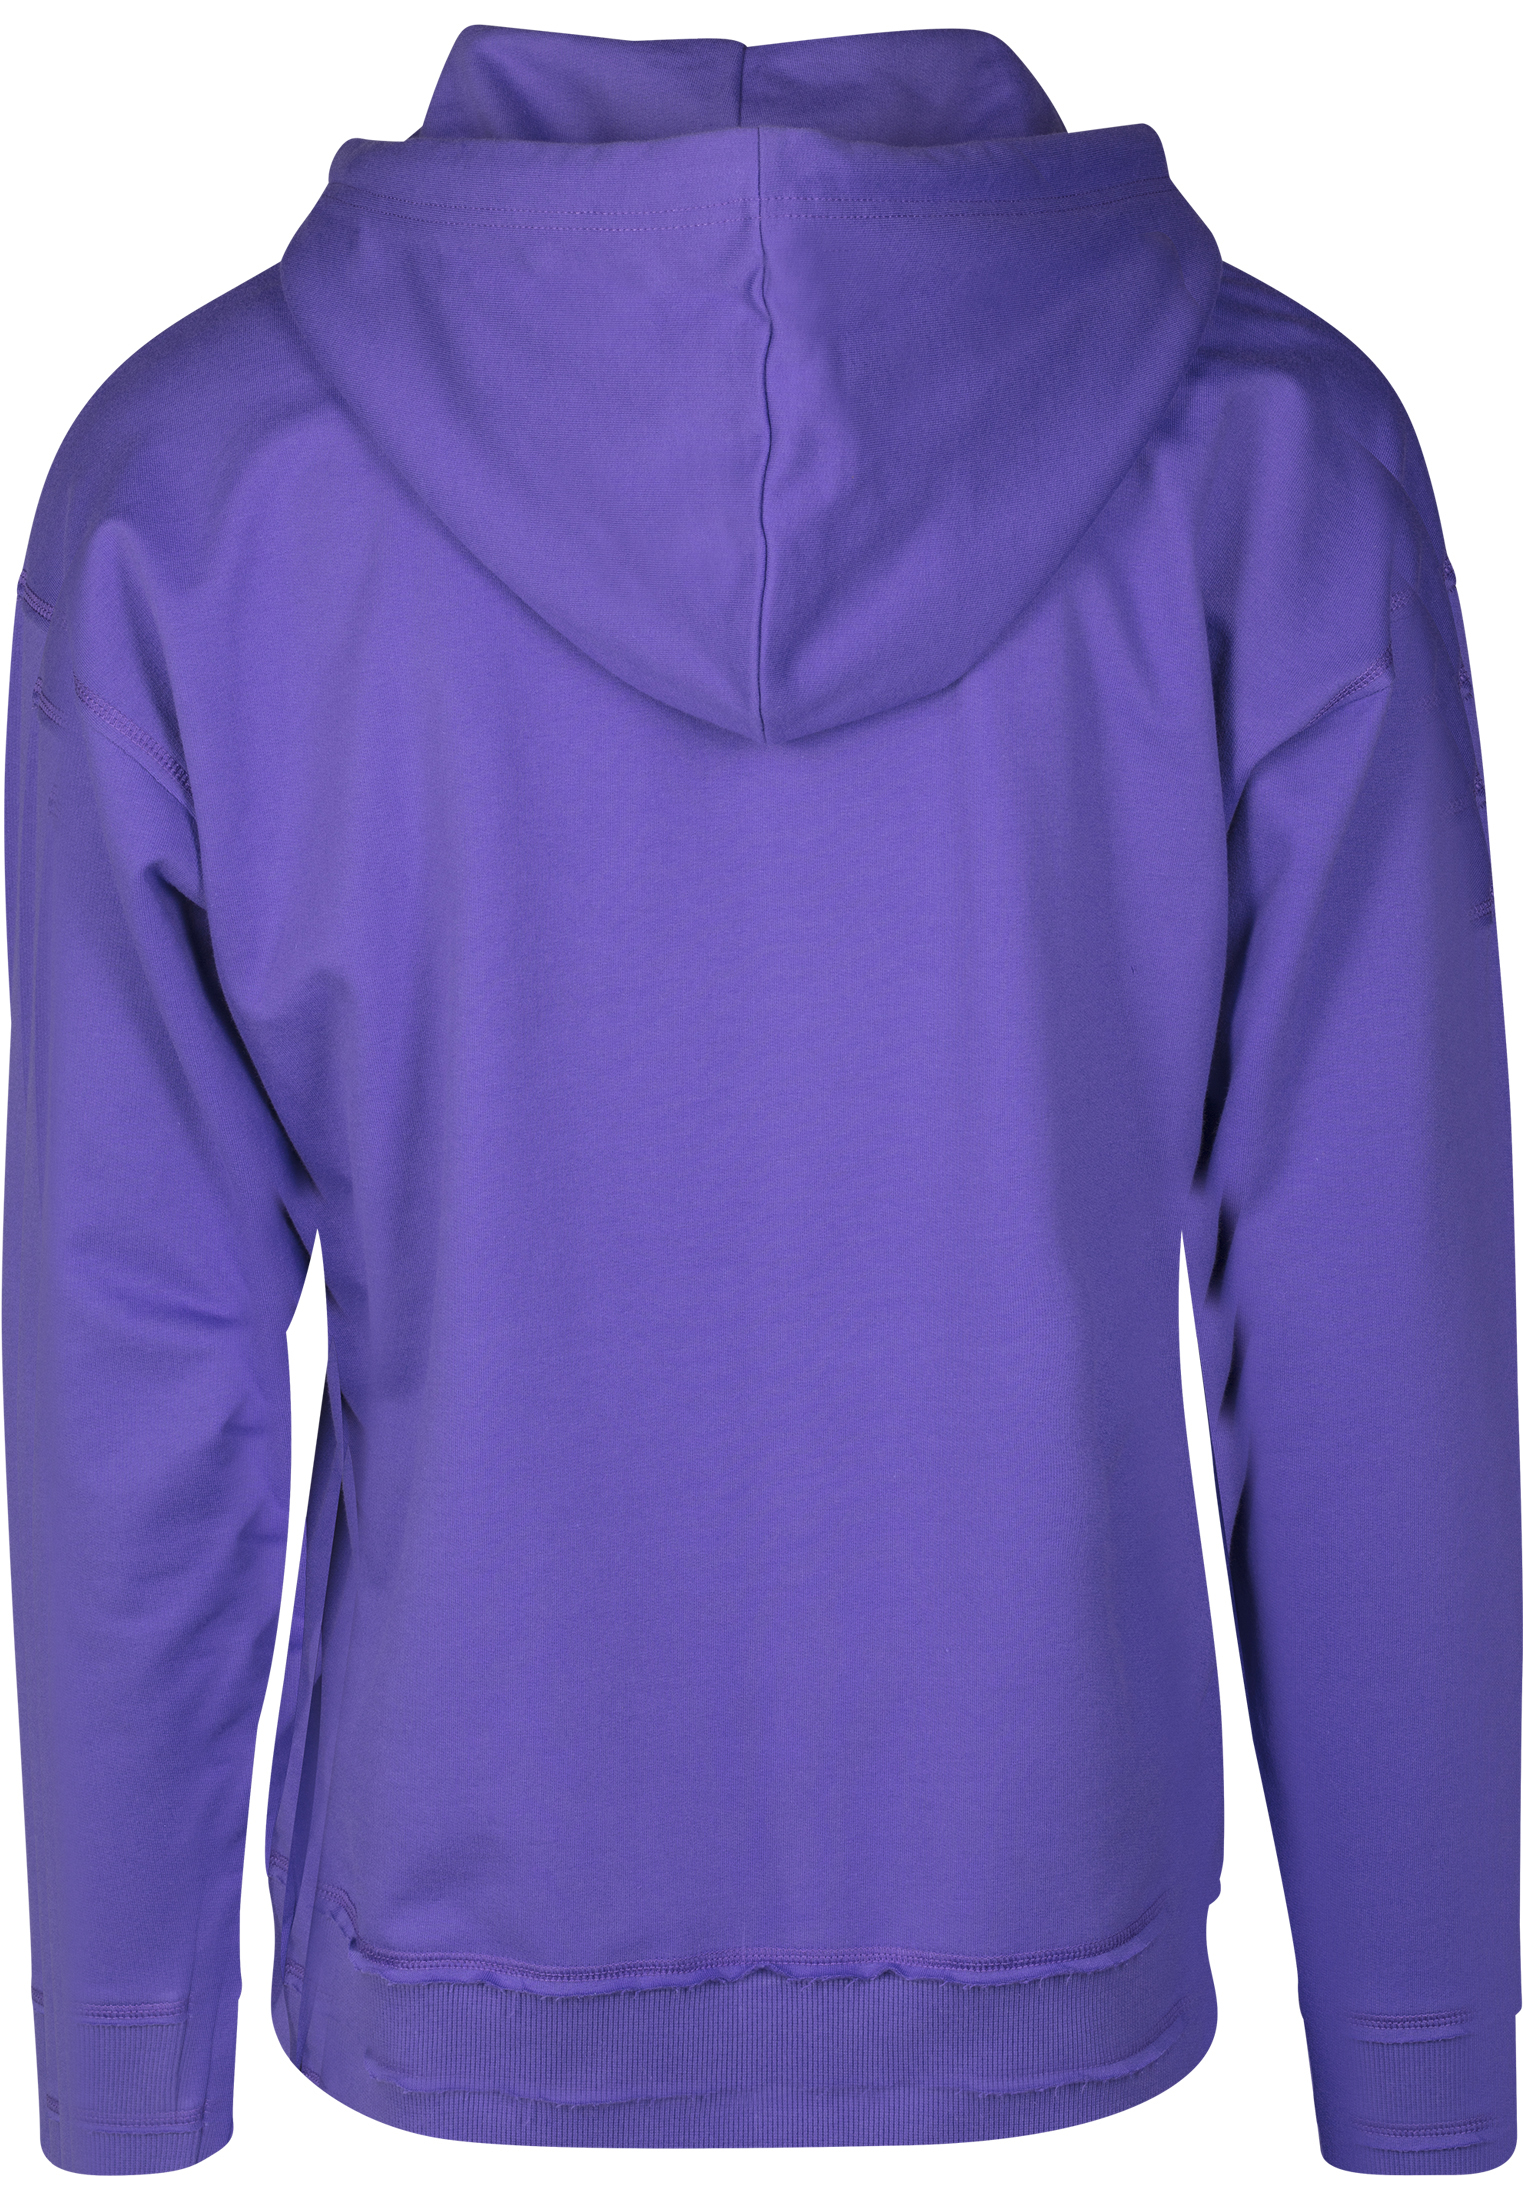 charly lownoise hoodie ultraviolet back